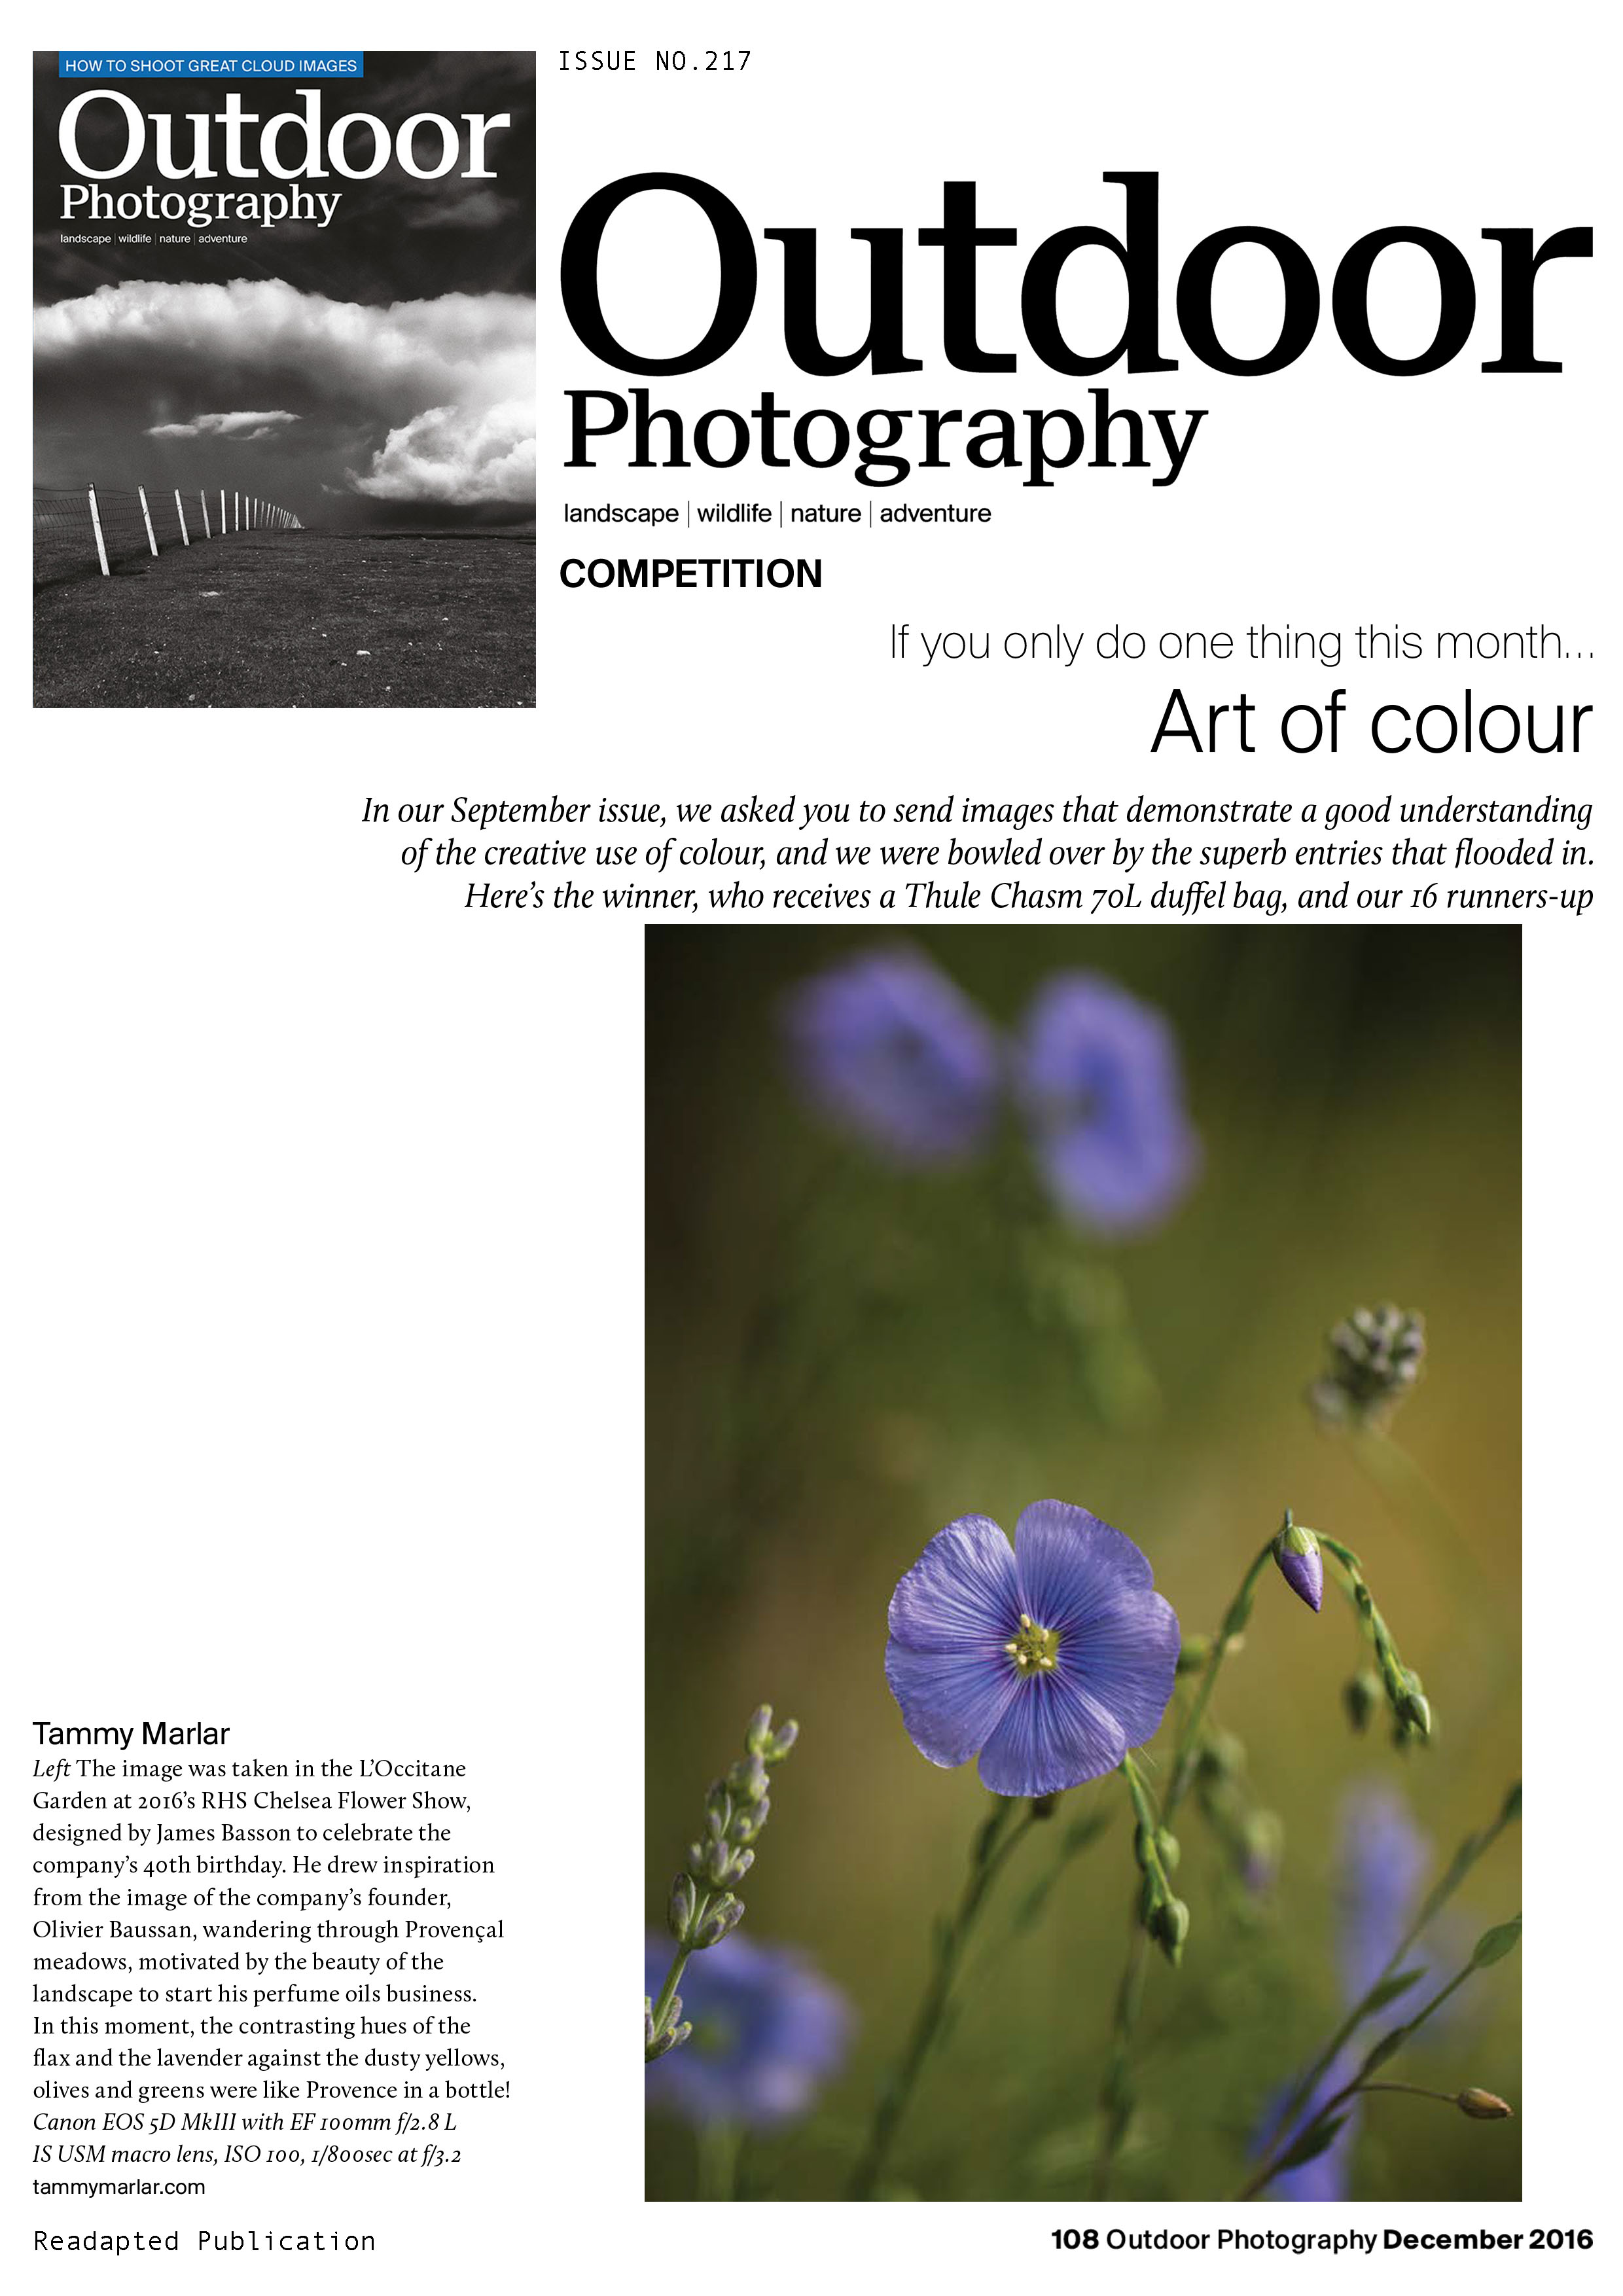 Outdoor Photography Competition